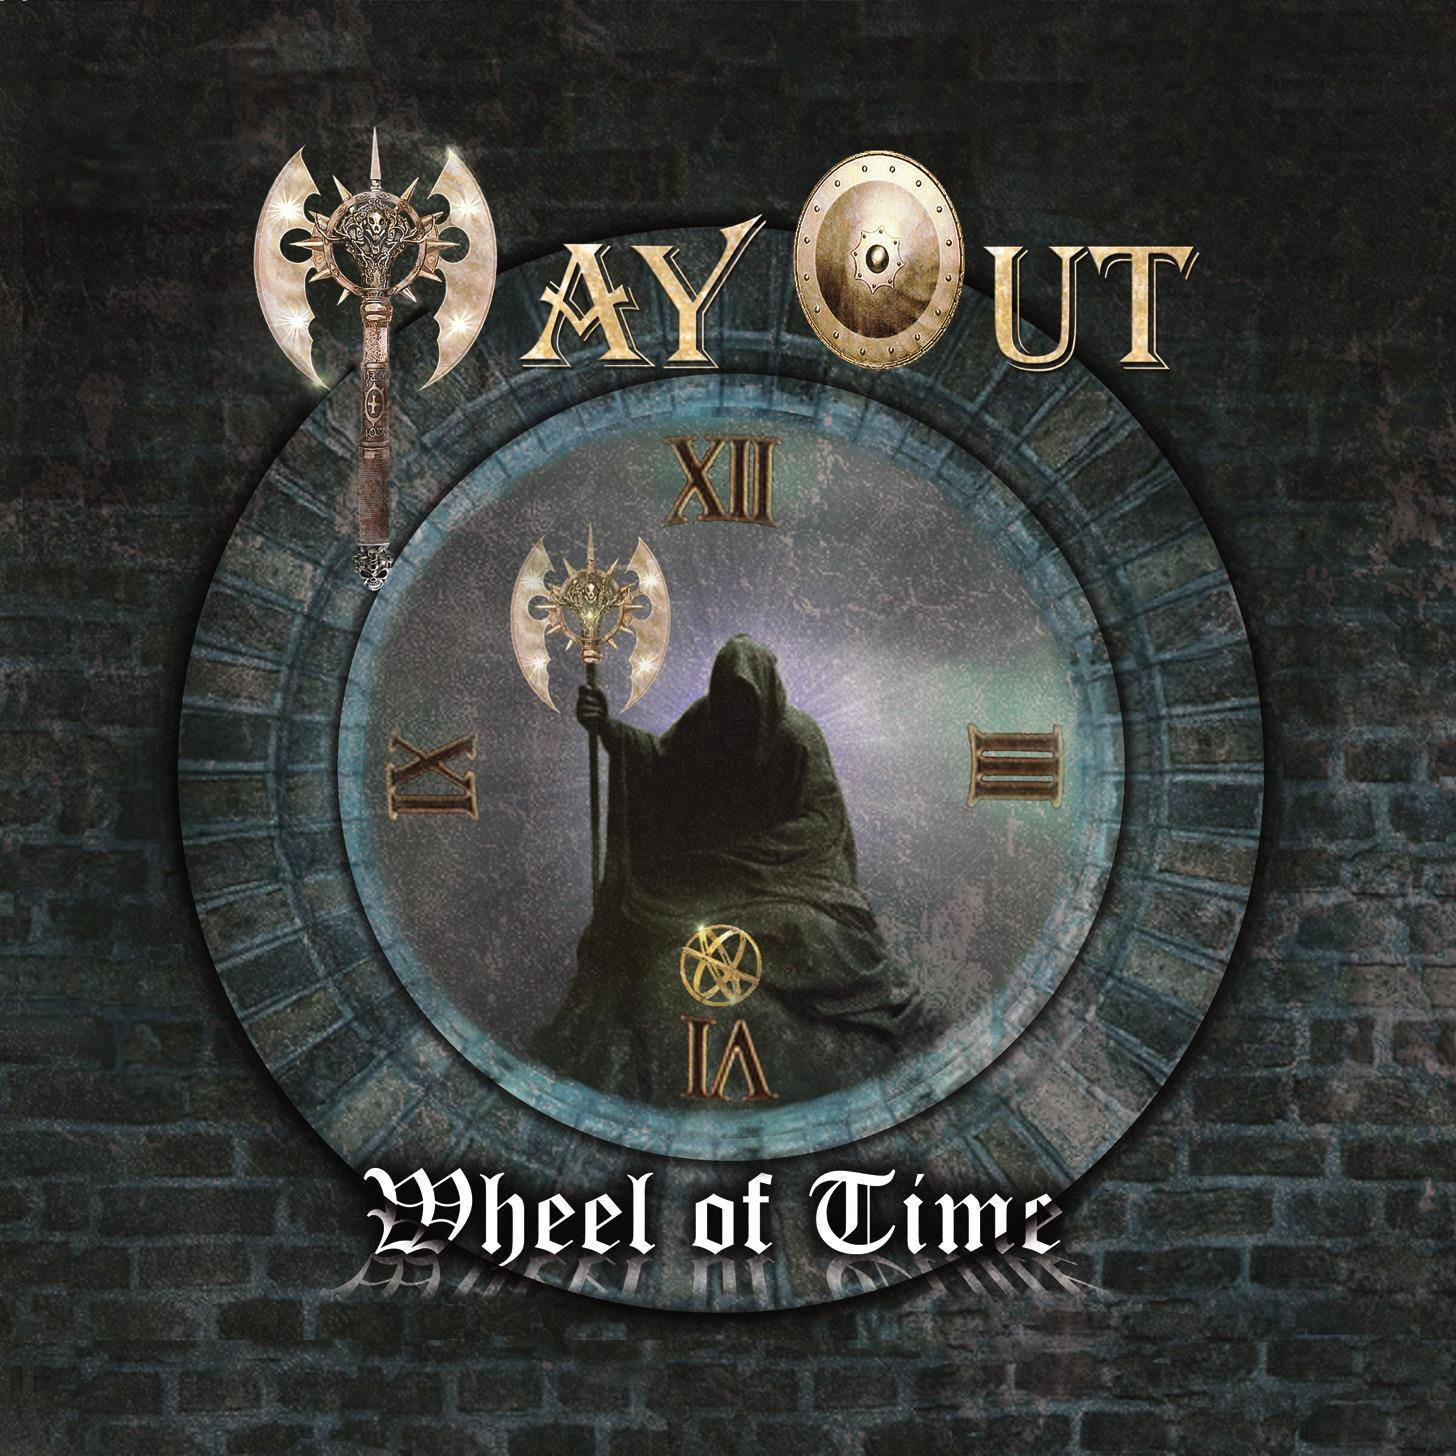 Way Out - Wheel Of Time - 2018